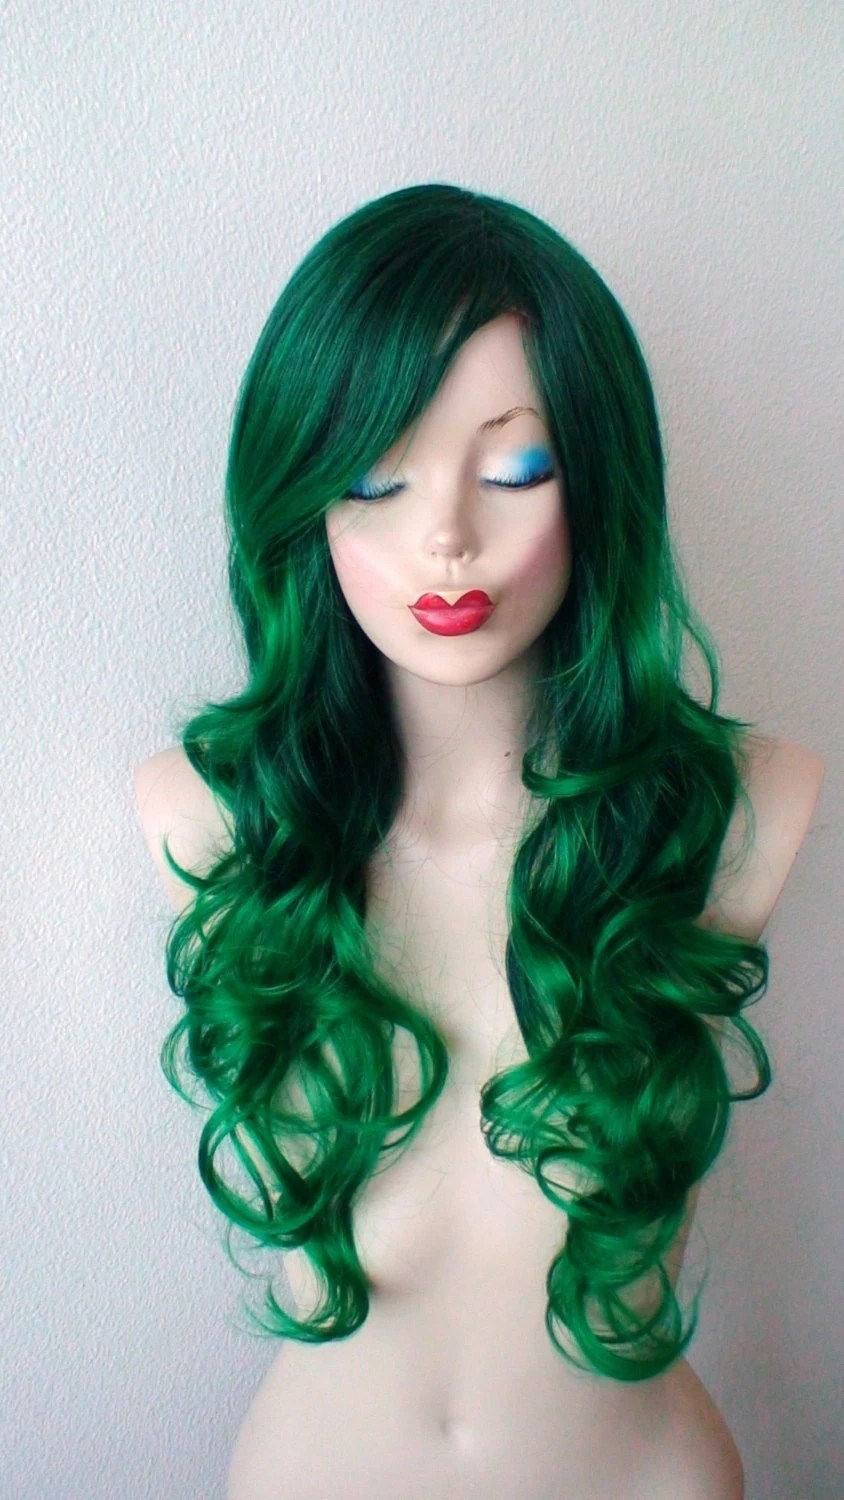 Irish Green Ombre wig Green color Long Curly by kekeshop on Etsy